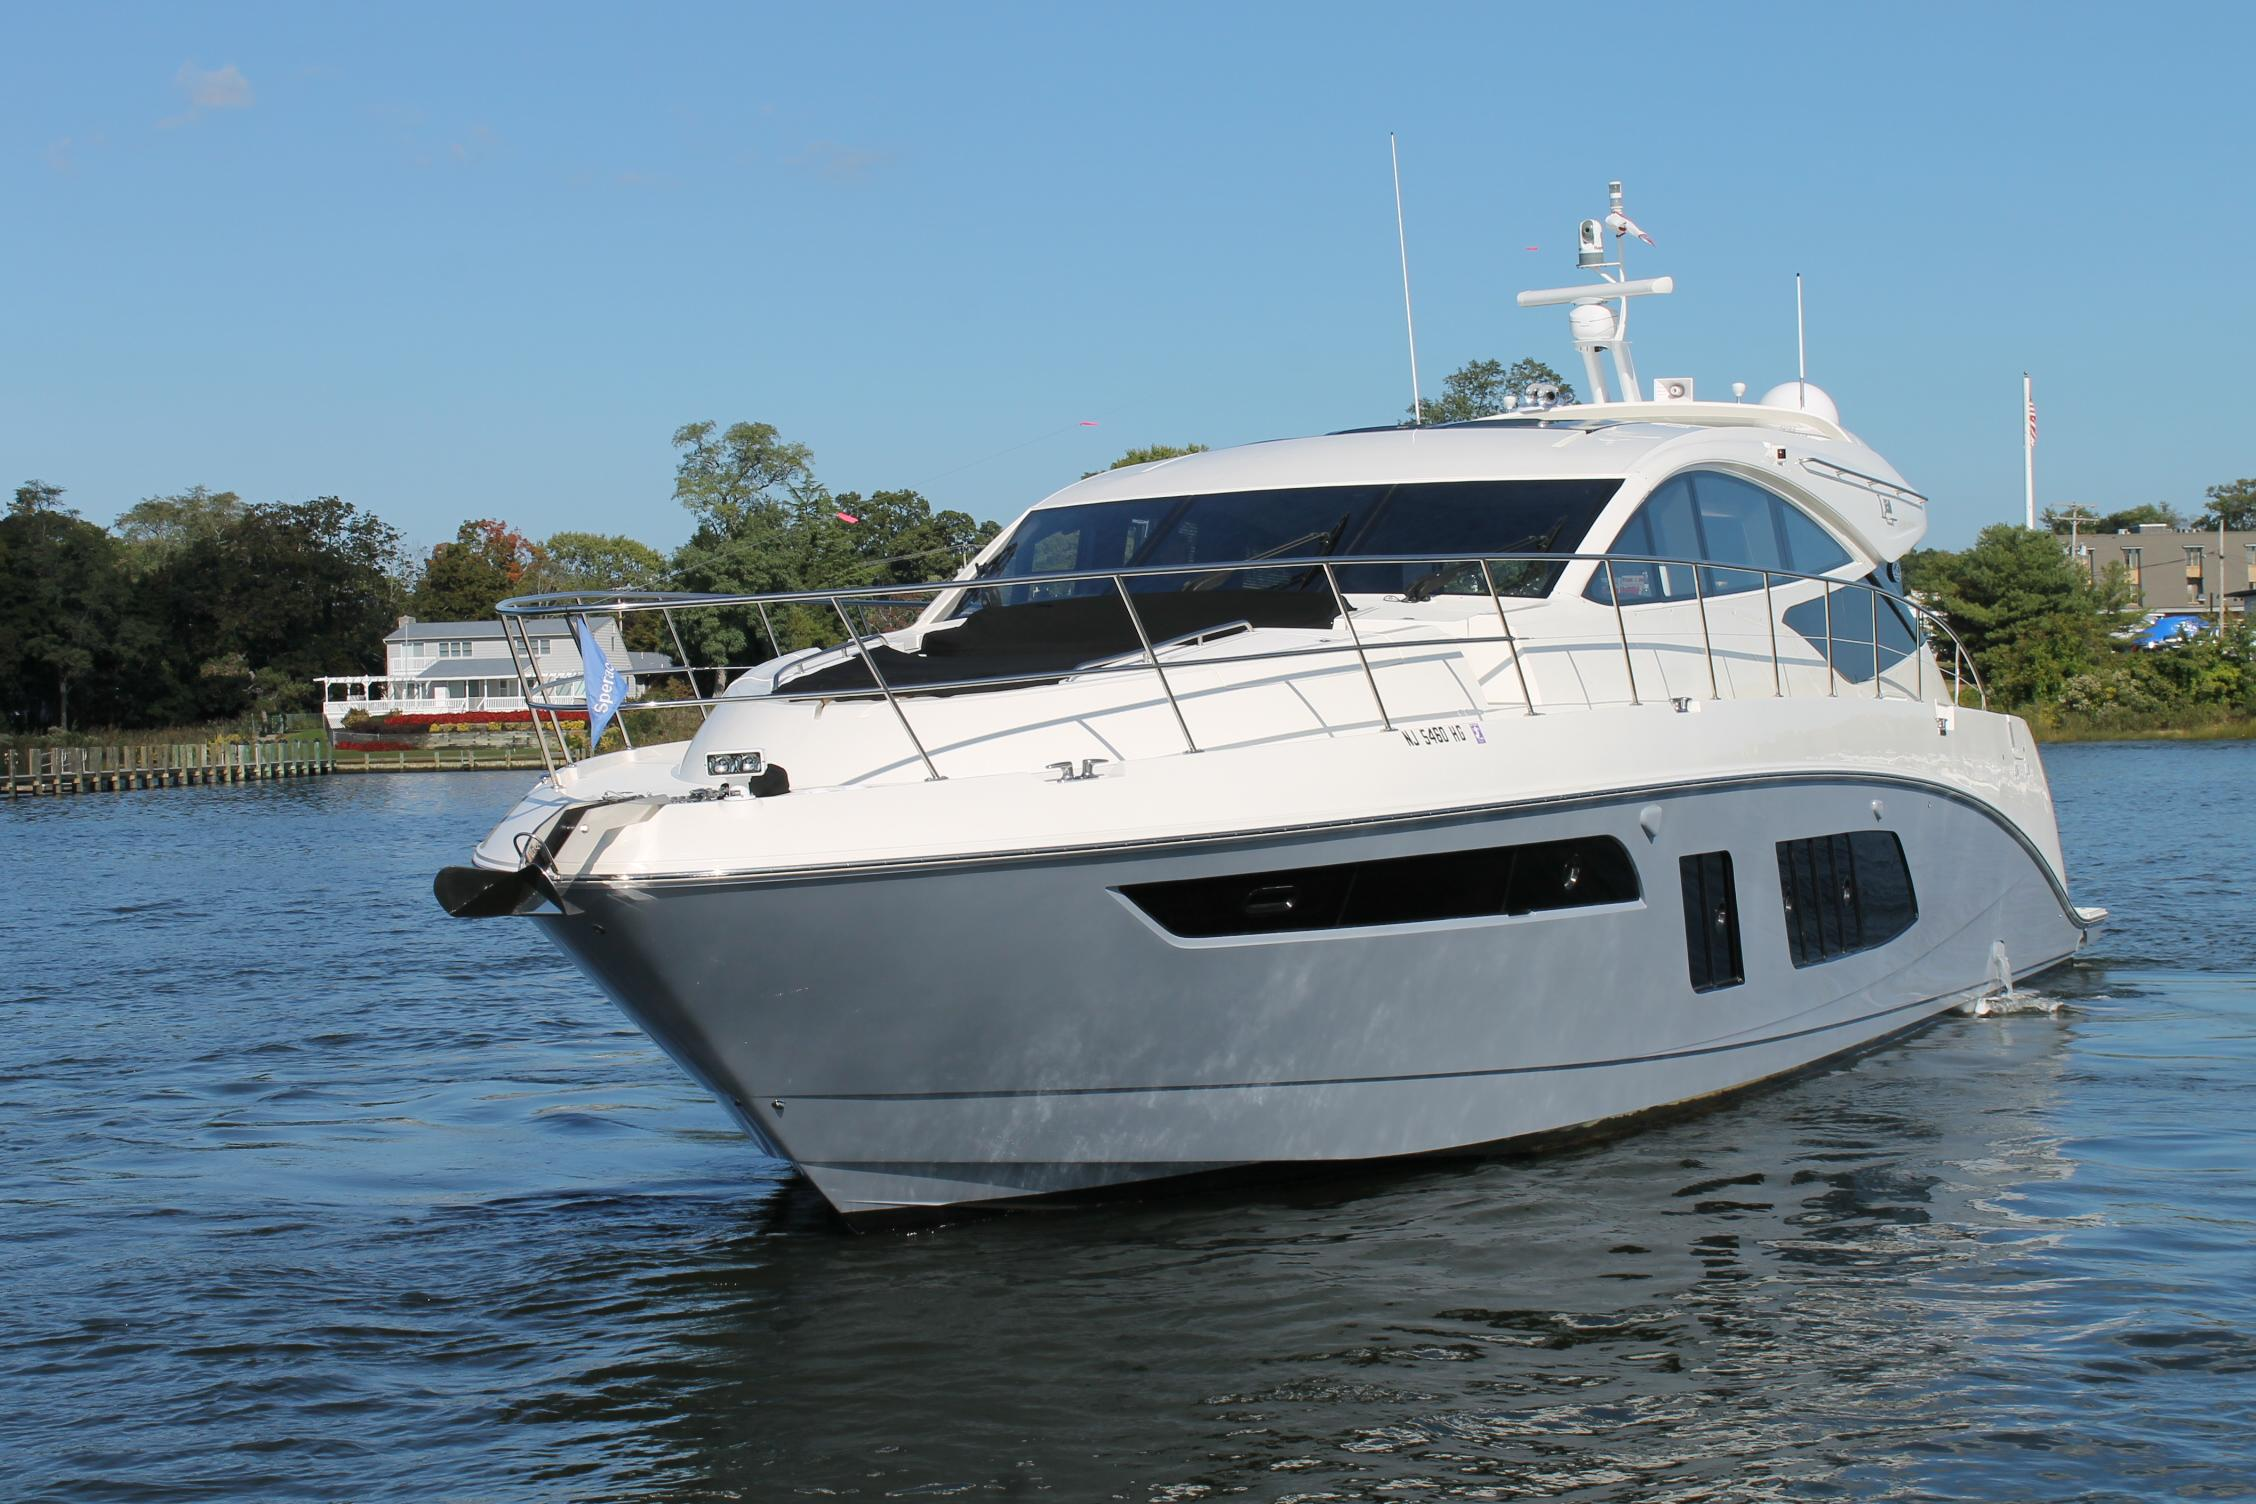 65 sea ray 2015 speracura iii for sale in brick  new jersey  us